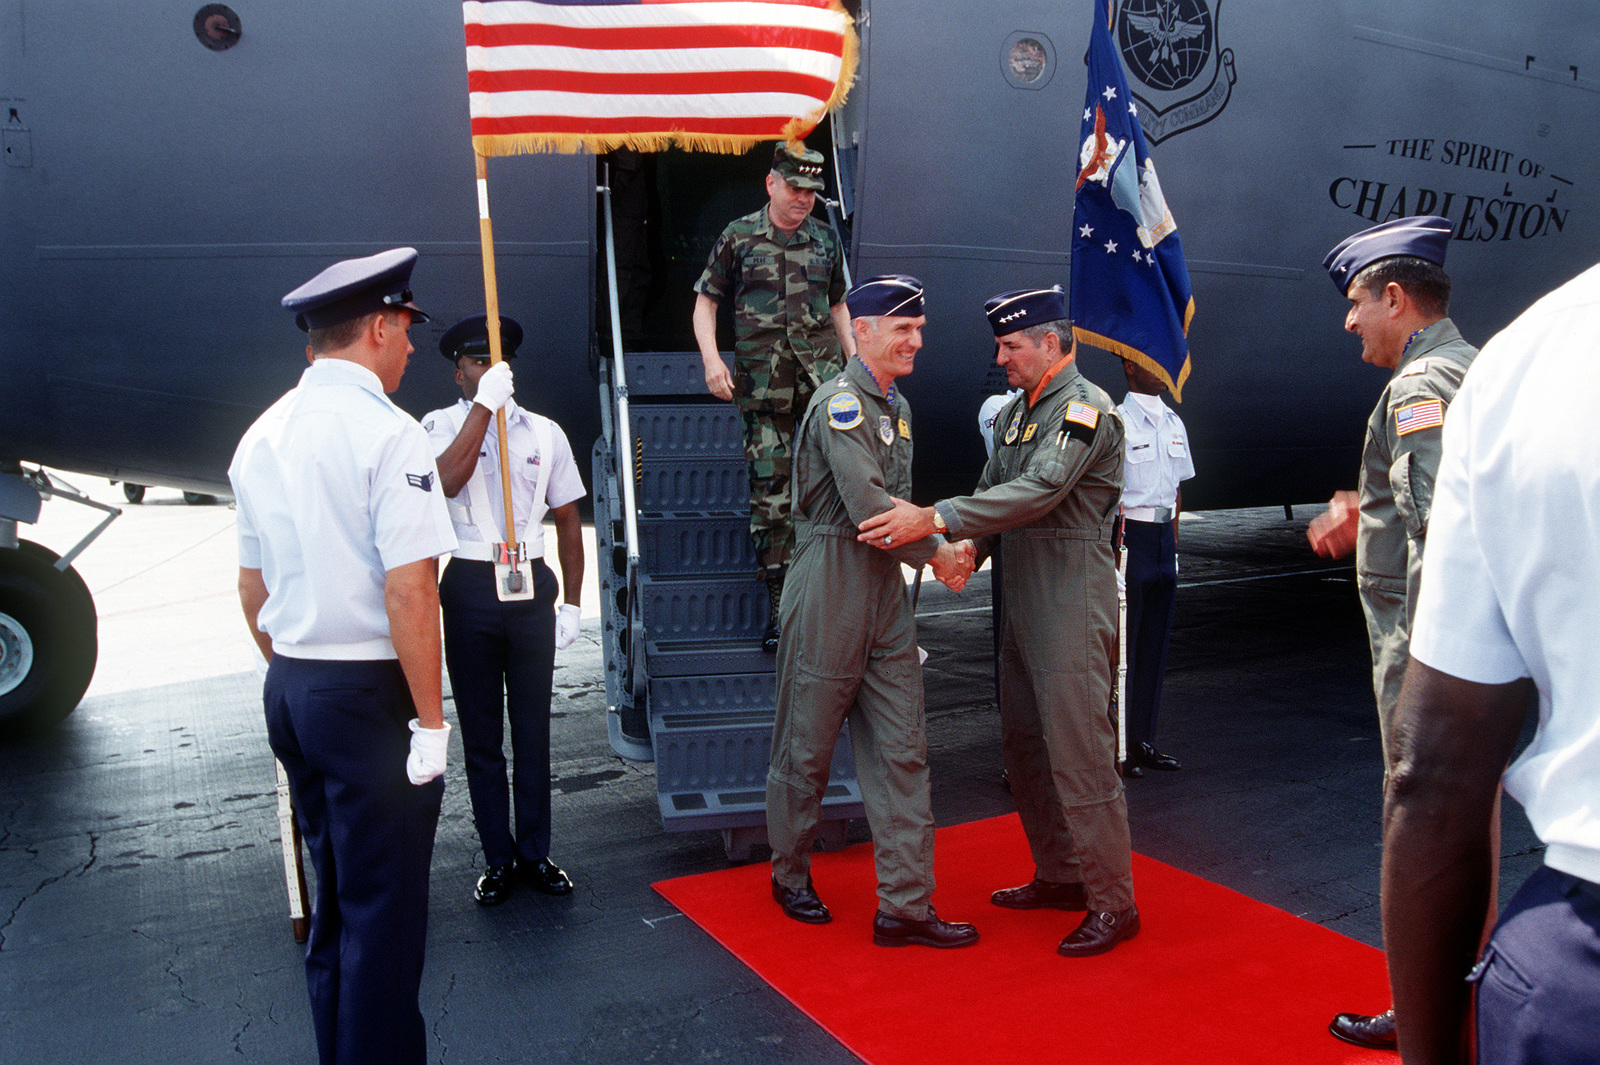 GEN Merill McPeak, Air Force CHIEF of STAFF, is greeted by Air Mobility Command's Commander, GEN Ronald Fogelman on his arrival after he piloted in the first C-17 Globemaster III being delivered to the Air Force. On the right is Commander of the 437th Airlift Wing, BGEN Thomas R. Mikolajcik waits to greet GEN McPeak